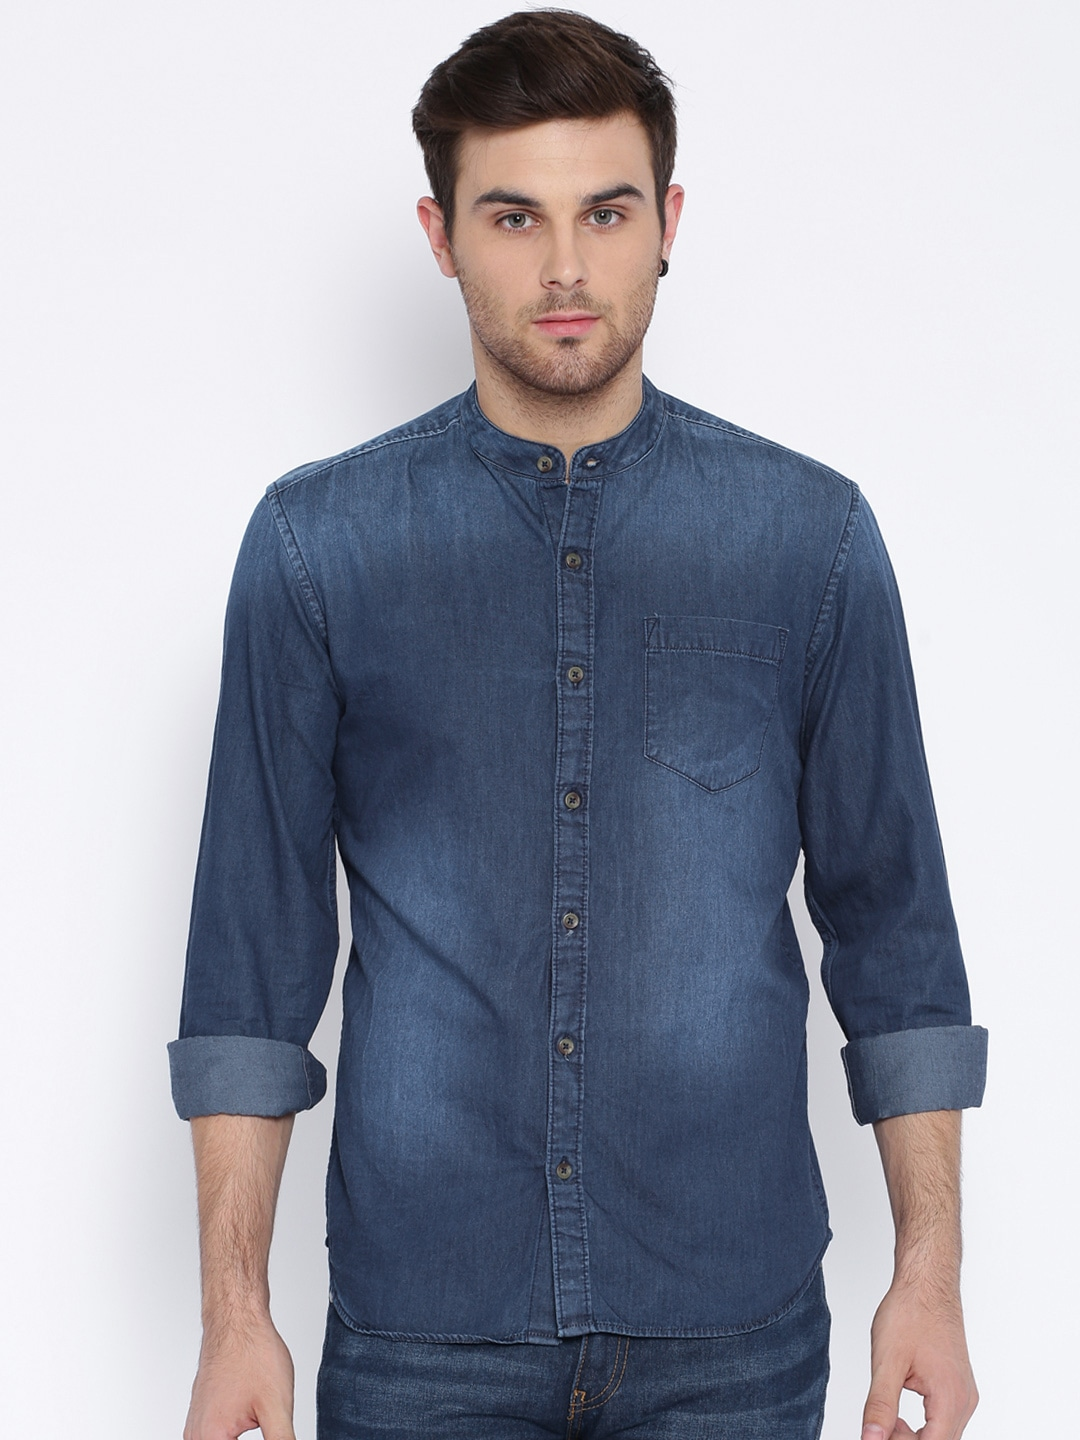 Casual Shirts for Men - Buy Men's Casual Shirts Online in India ...